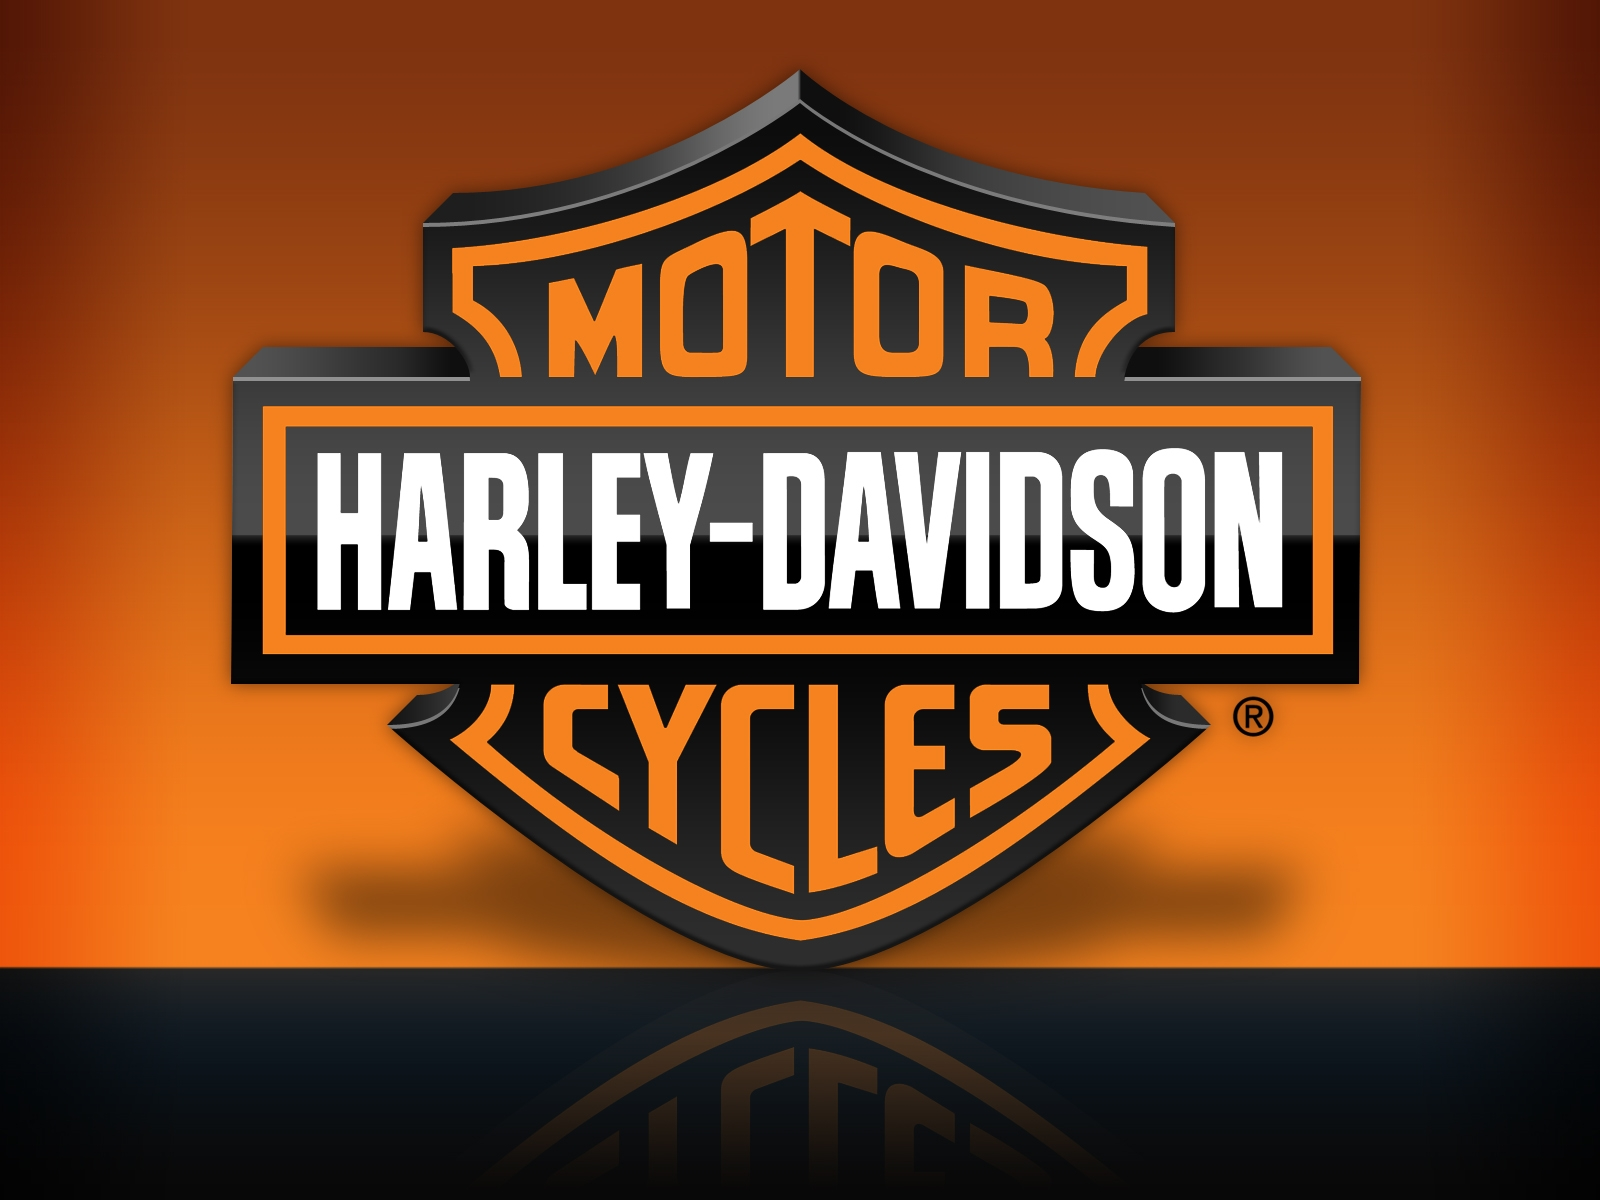 facebook italia sfondi e wallpaper harley davidson. Black Bedroom Furniture Sets. Home Design Ideas